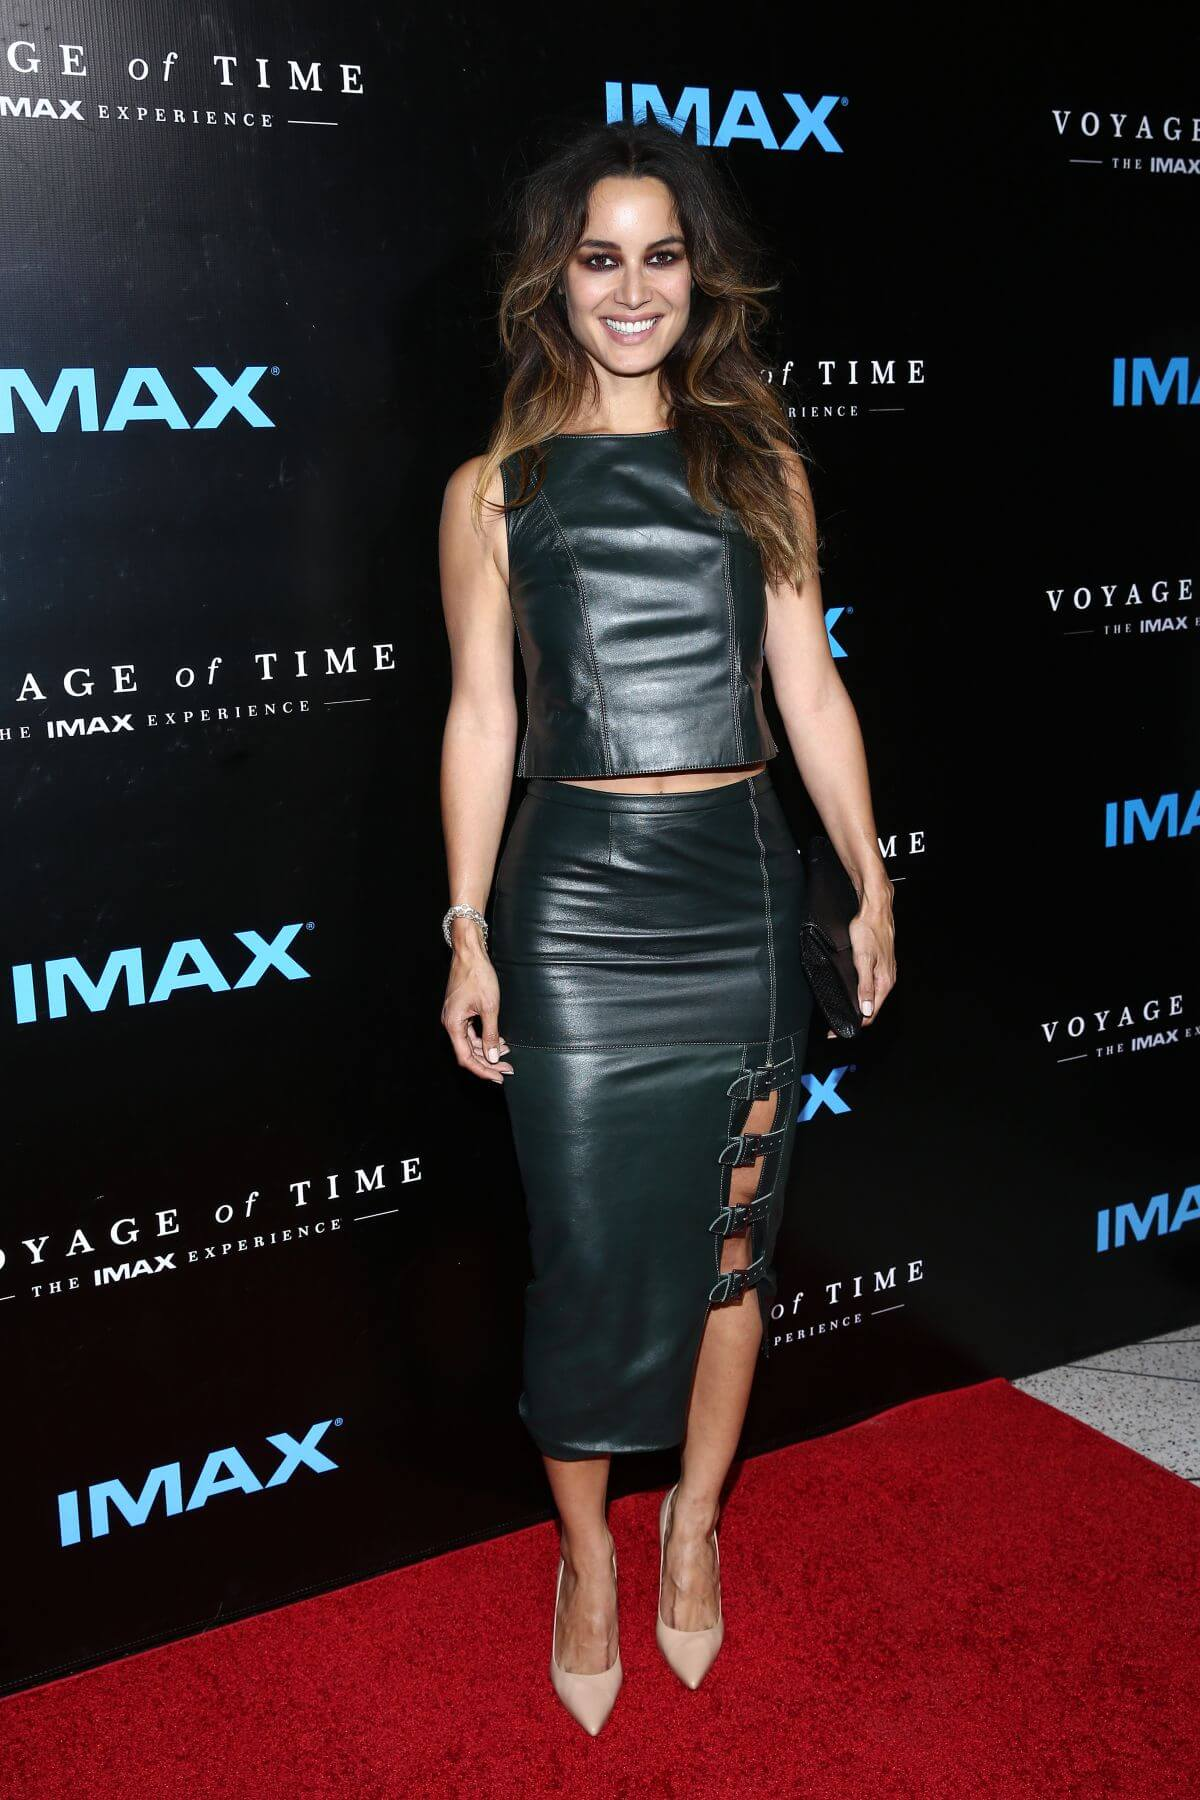 Berenice Marlohe Stills at Voyage of Time: The IMAX Experience Premiere in Los Angeles